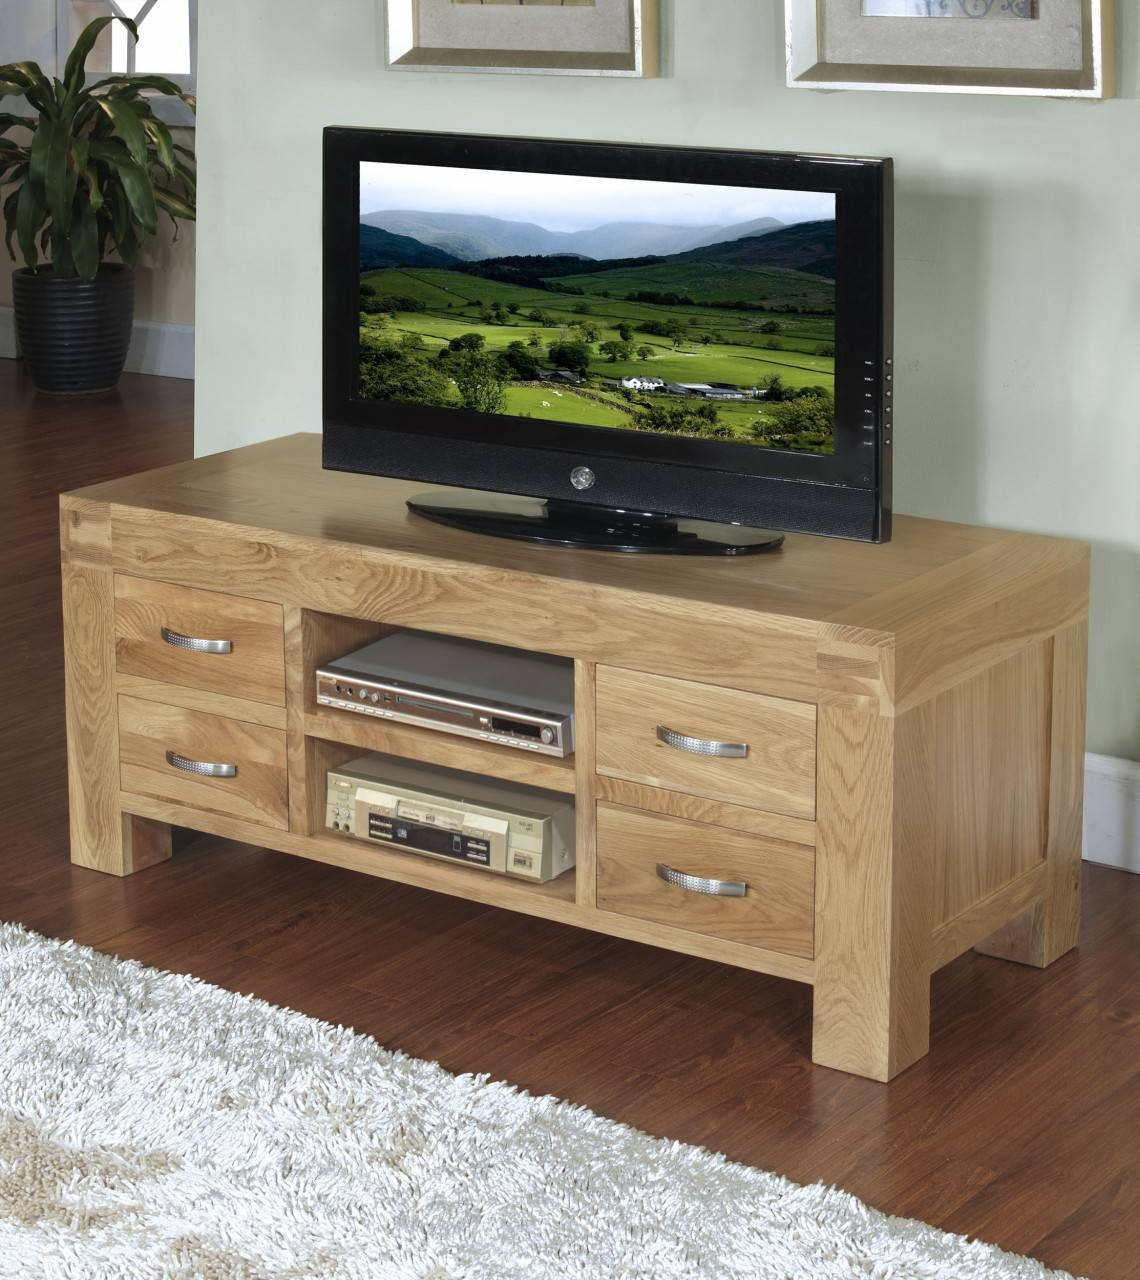 Rivermead Solid Oak Modern Furniture Widescreen Tv Cabinet Stand Intended For Oak Tv Stands For Flat Screens (View 13 of 15)